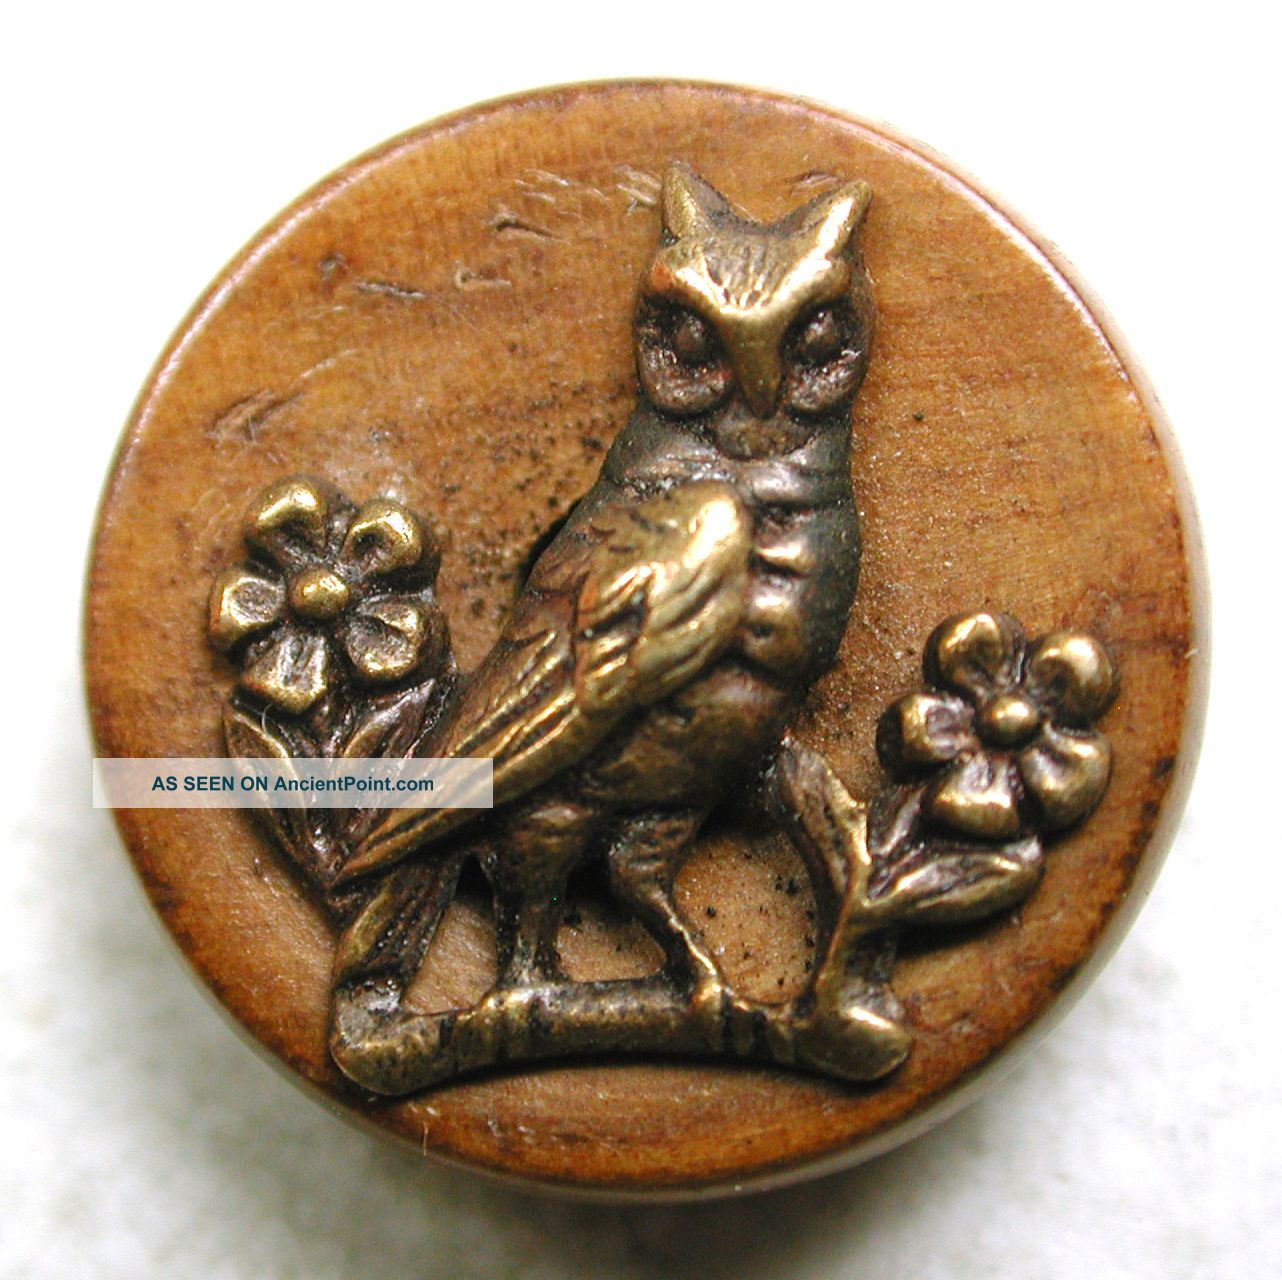 Antique Button Perched Brass Owl On A Wood Back - 9/16